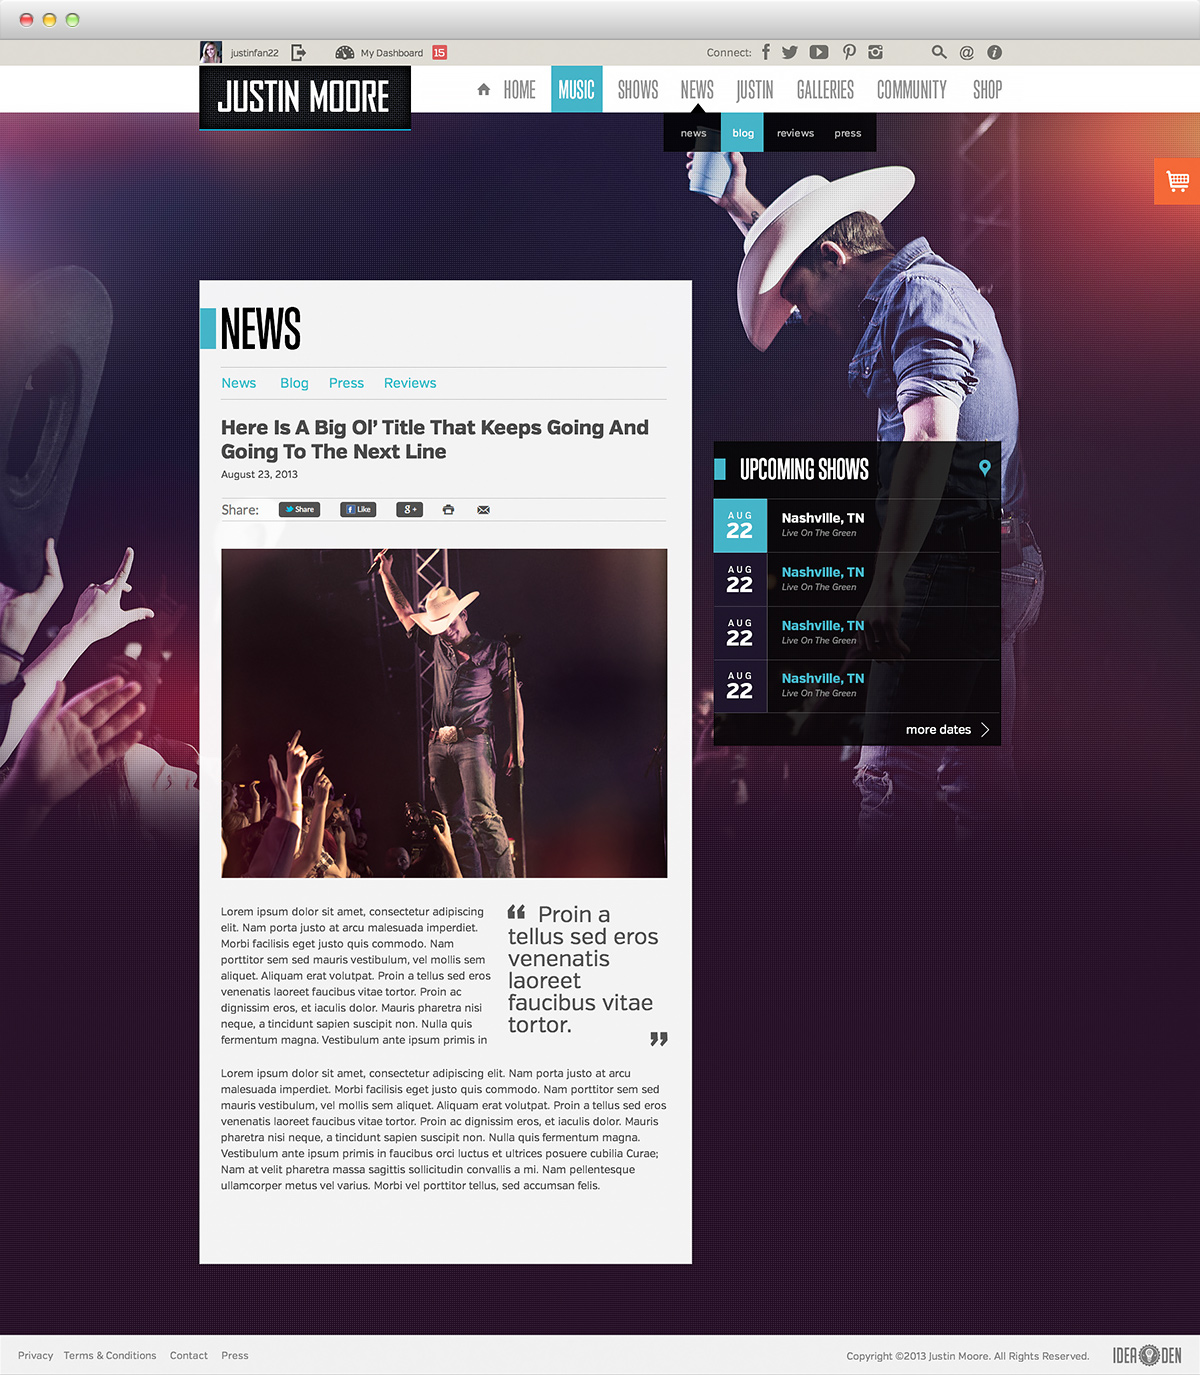 Justin Moore - News